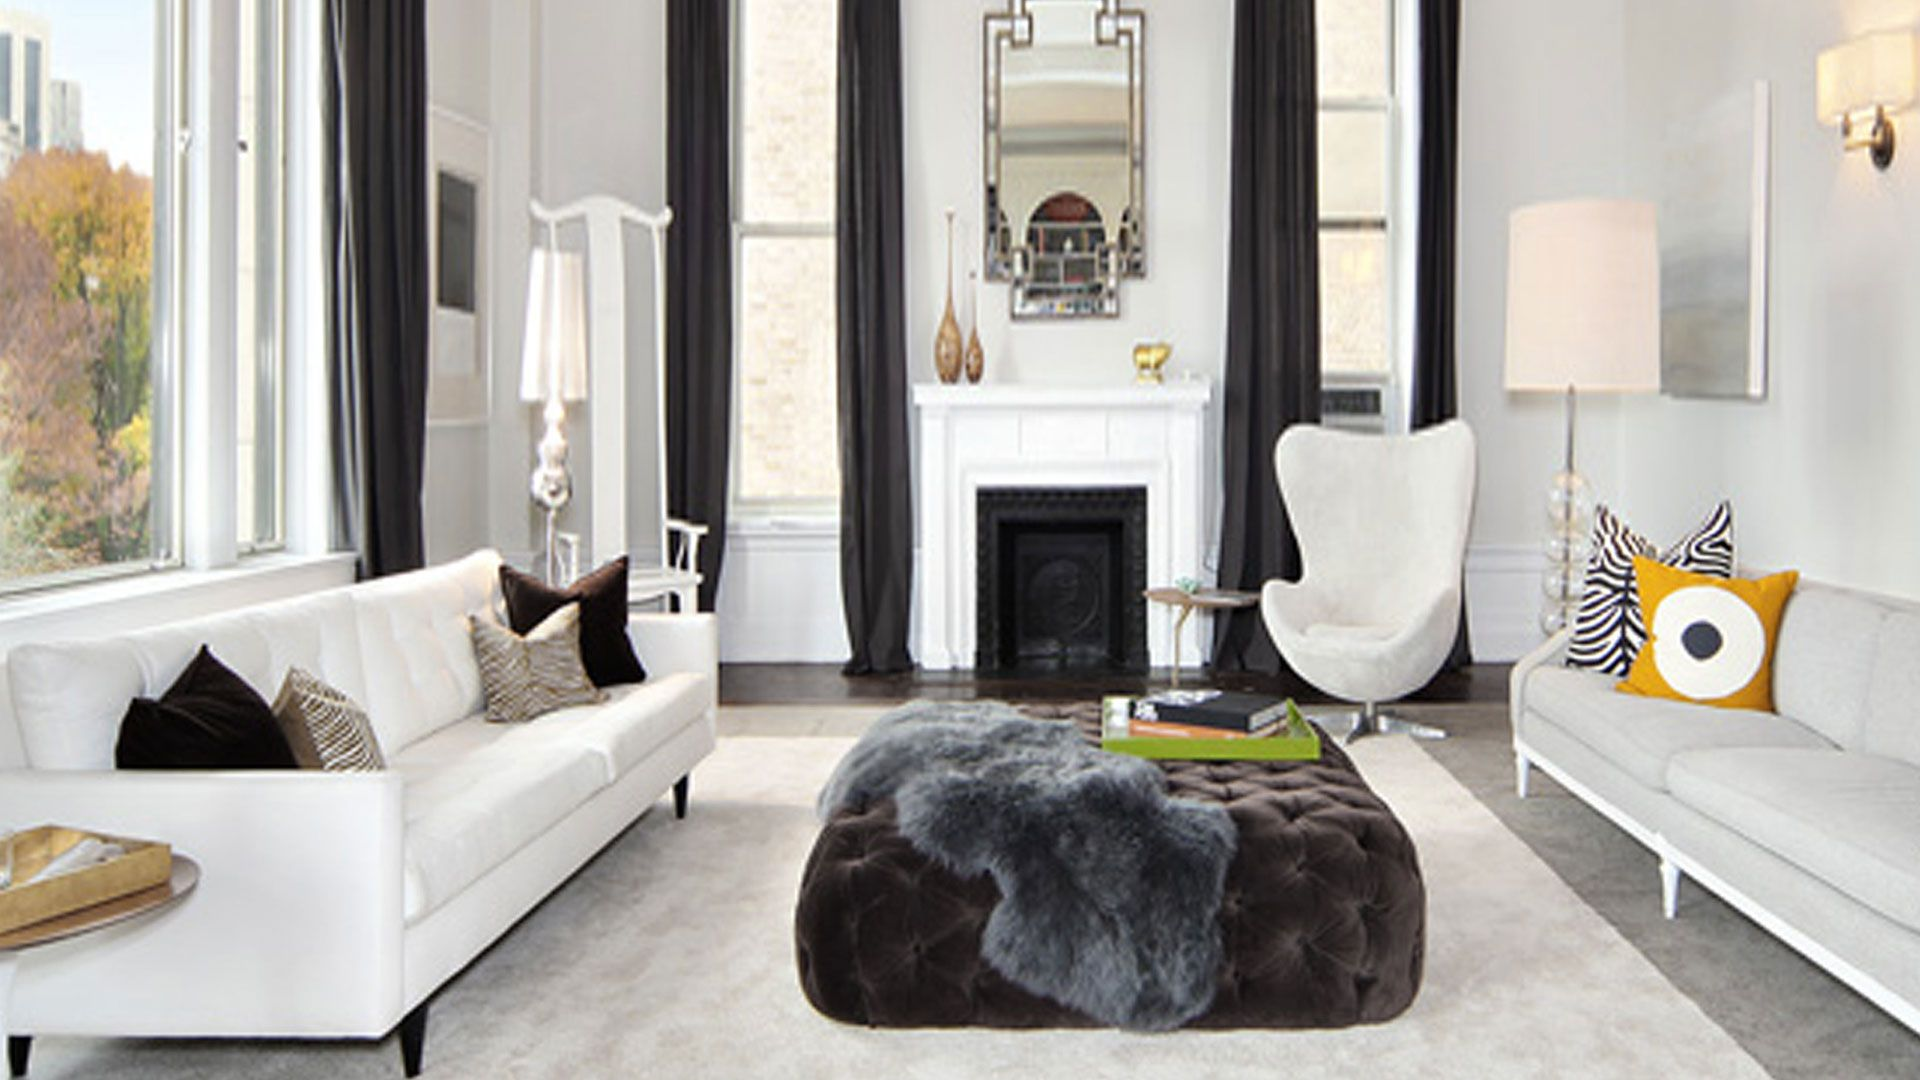 Superieur Living Room With Asian Chair